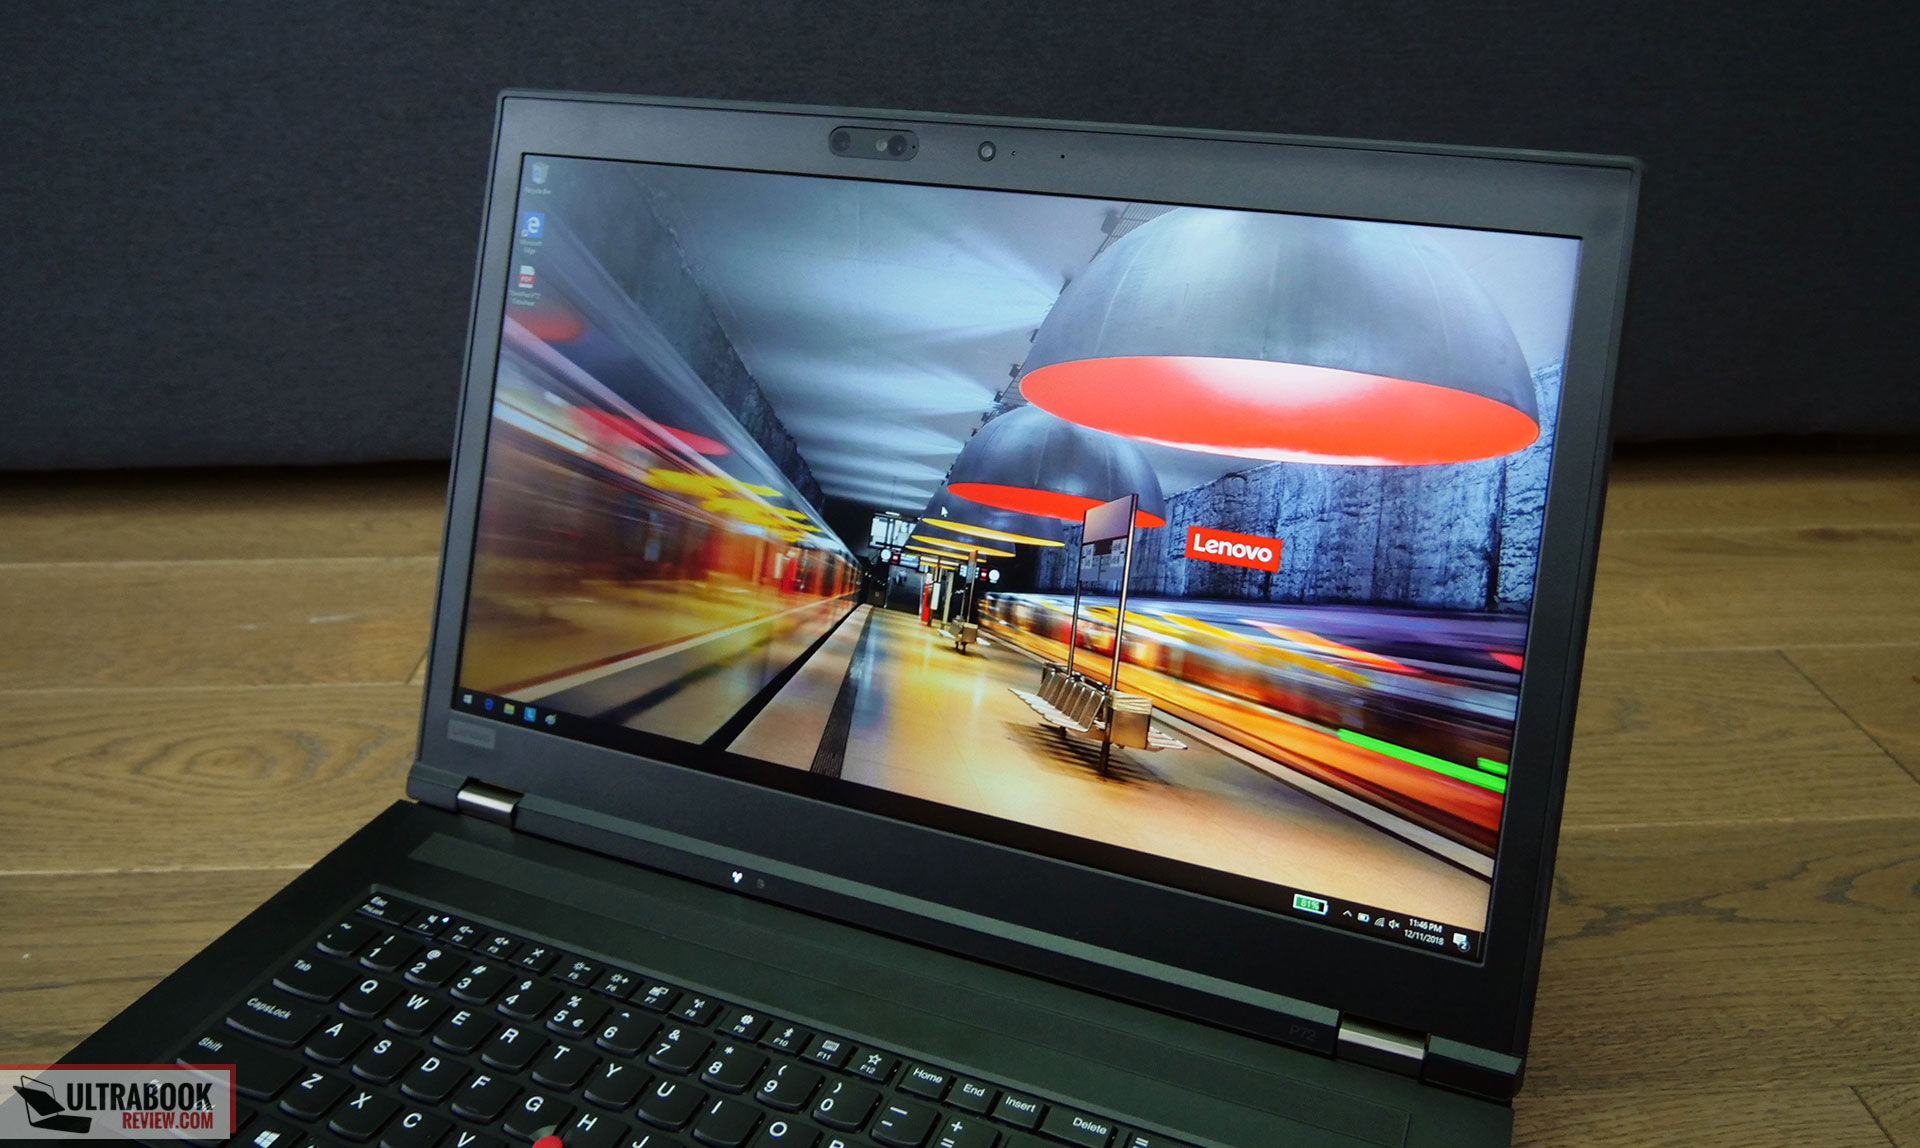 Lenovo ThinkPad P72 review (i7-8750H, Quadro P2000, FHD screen)